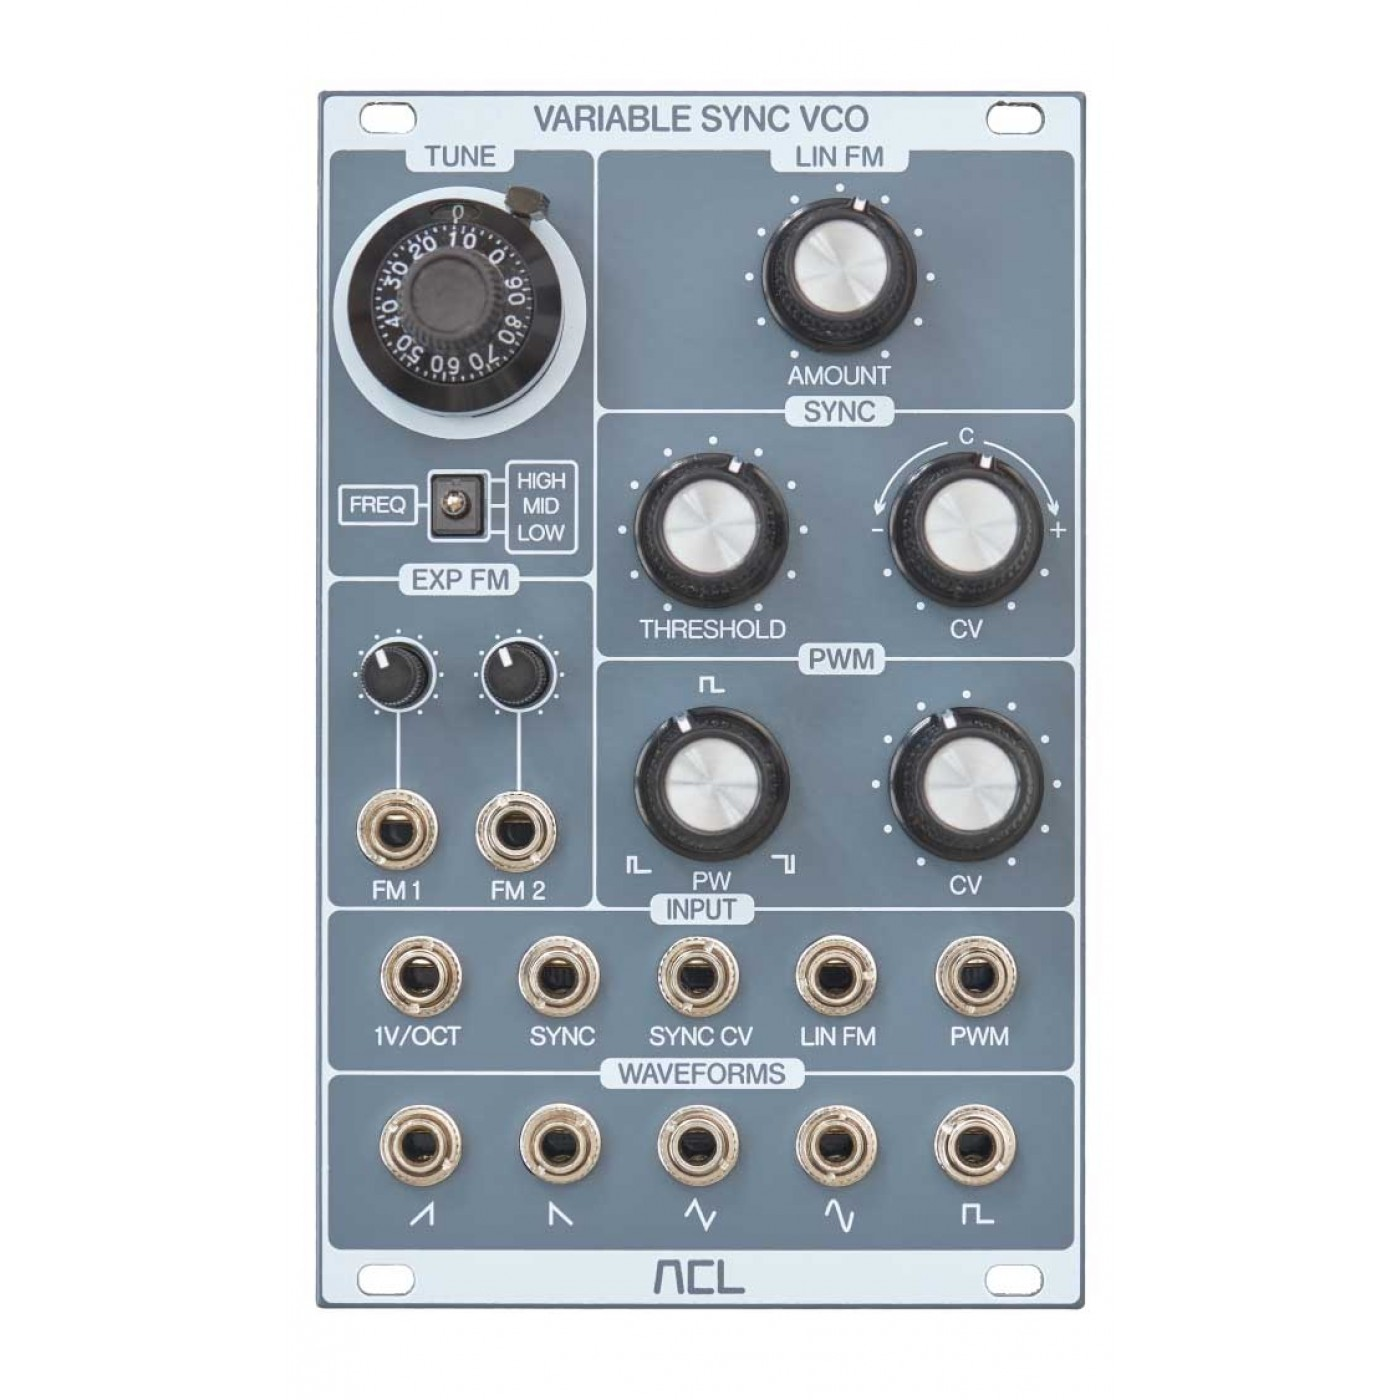 ACL VARIABLE SYNC VCO